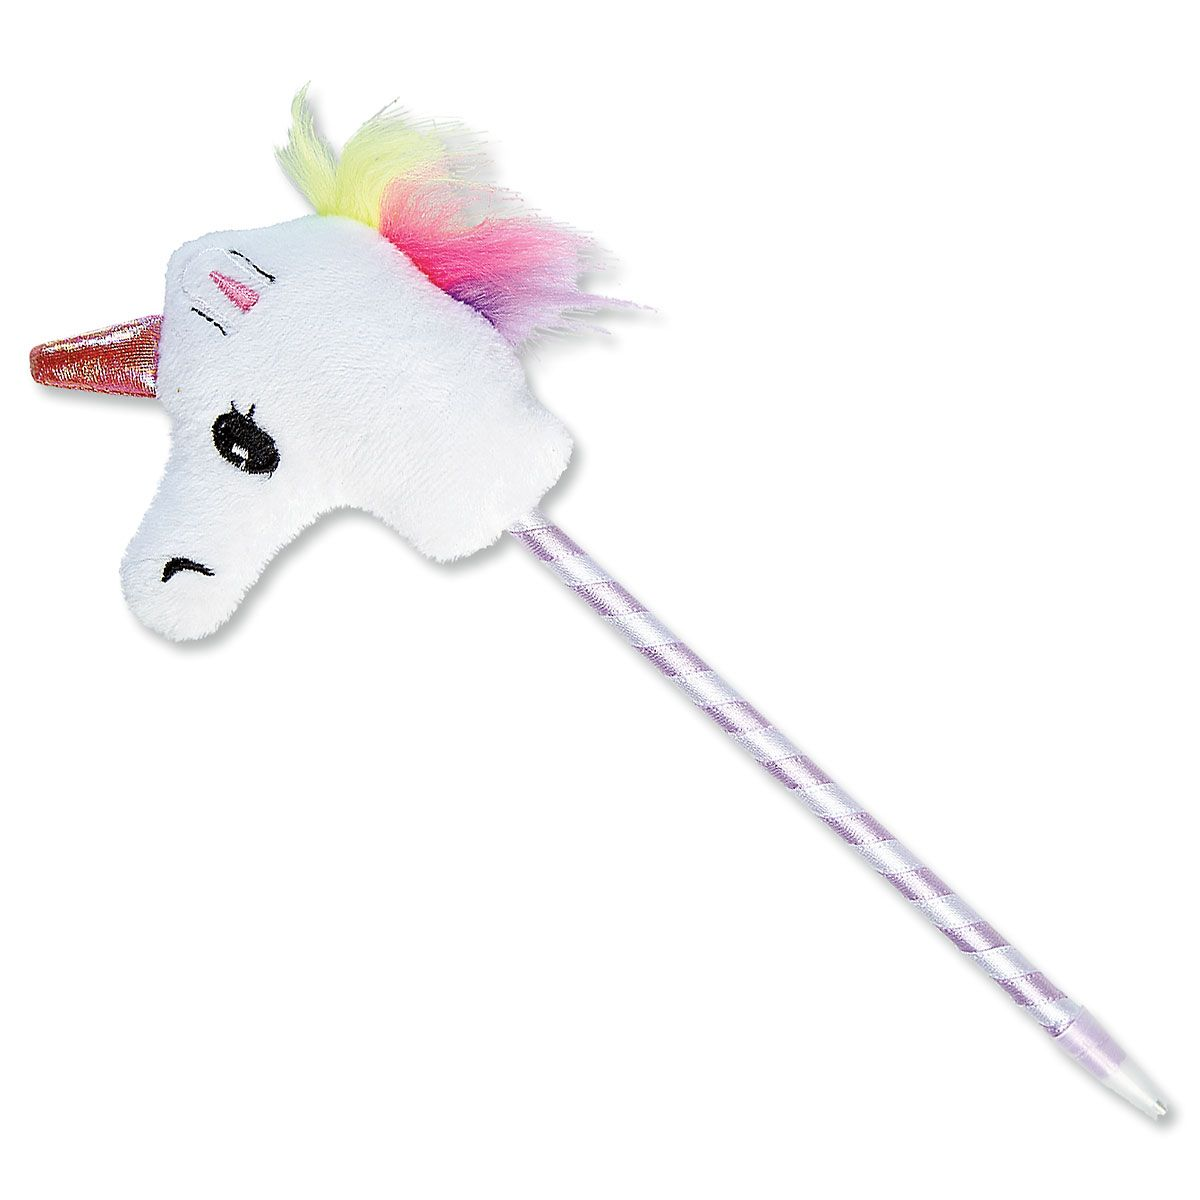 Plush Unicorn Pen